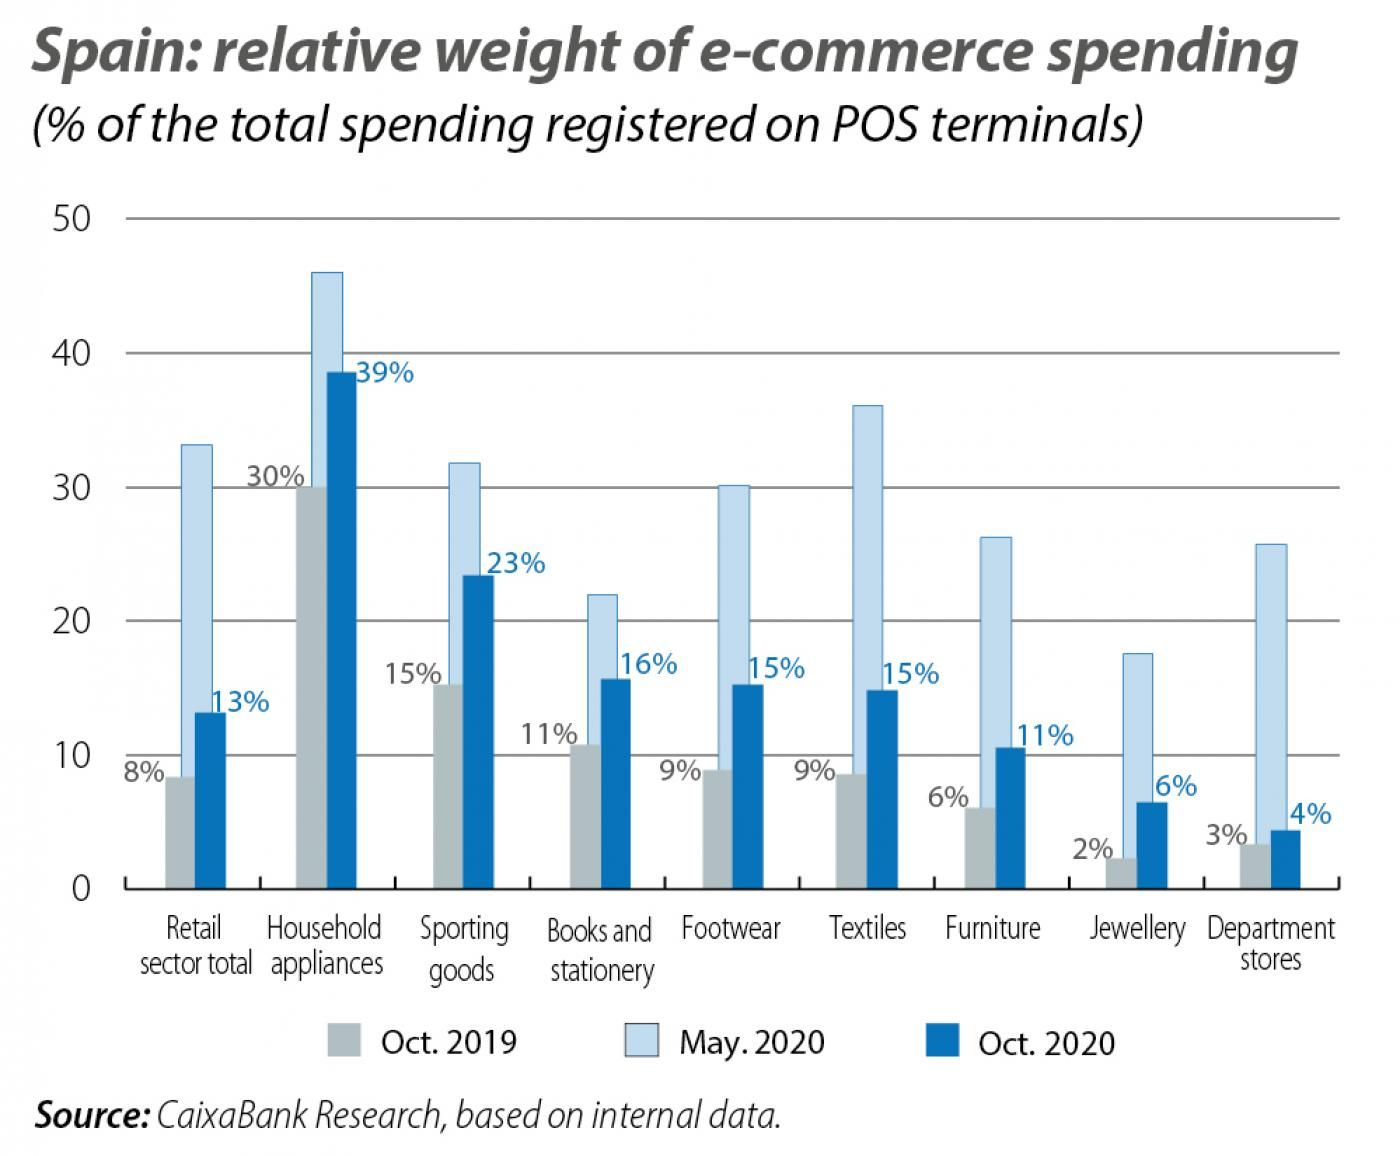 Spain: relative weight of e-commerce spending